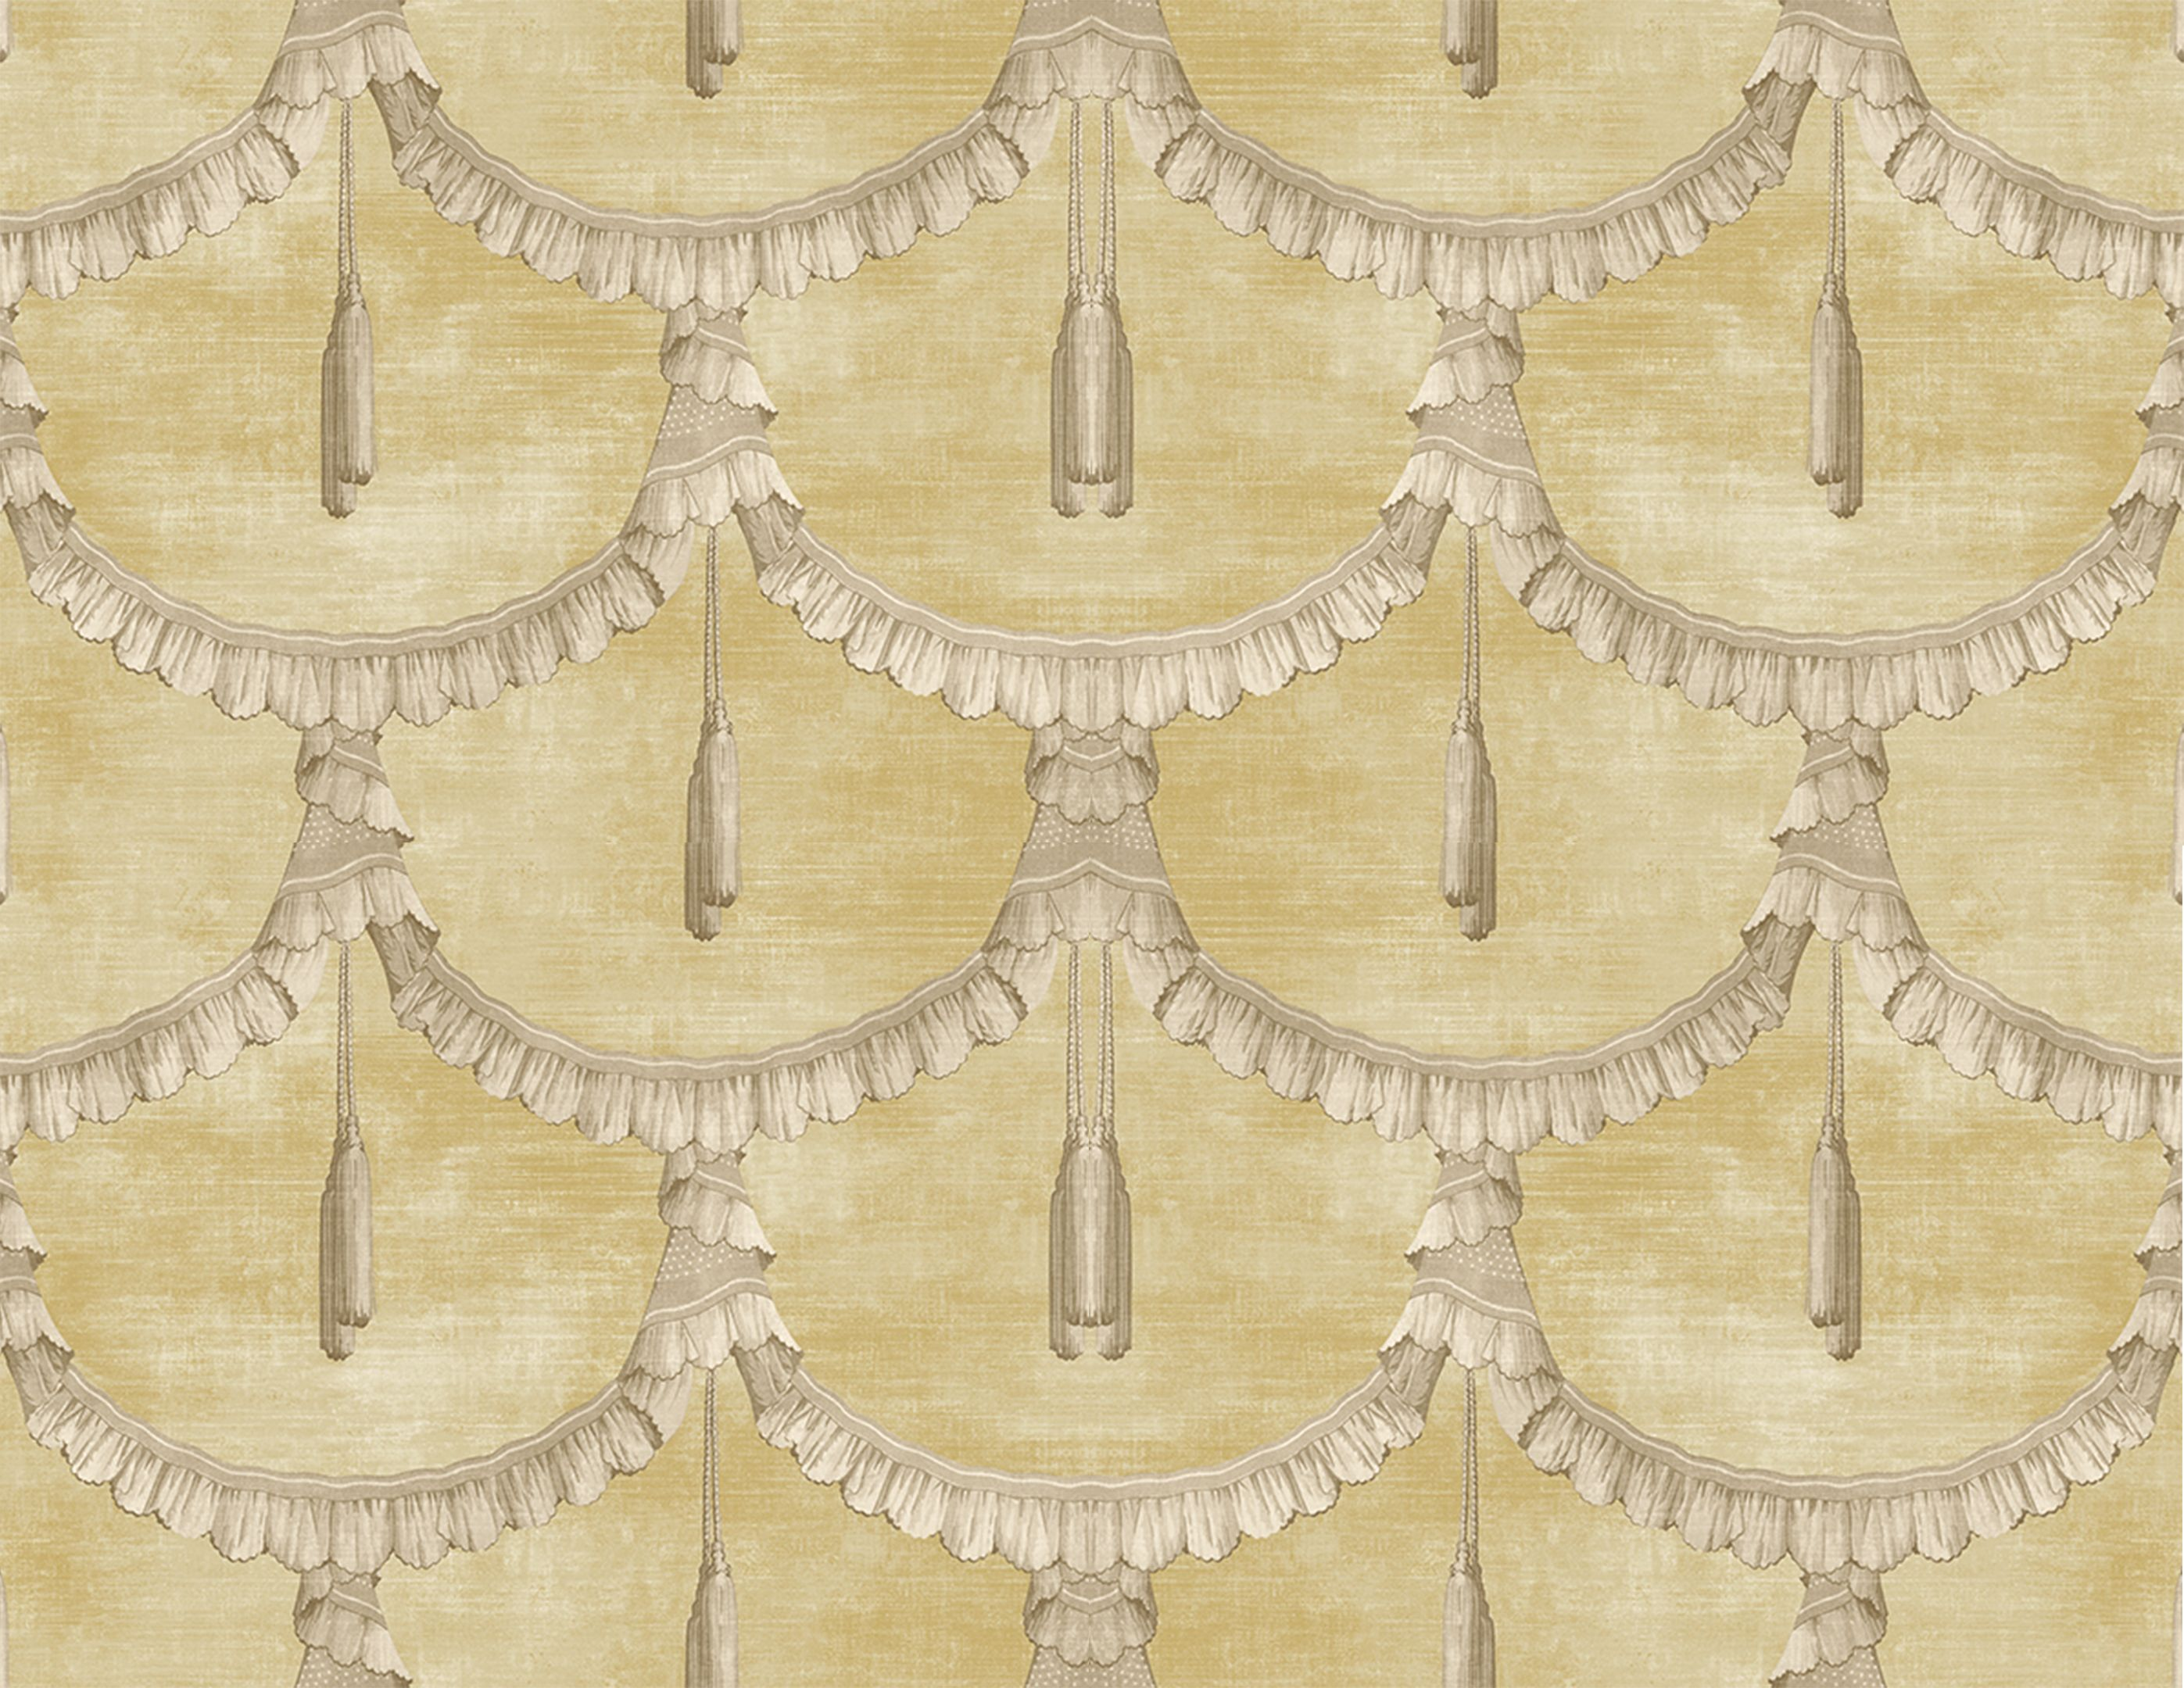 Pin by Art decor on wall paper art decor | Pinterest | Wall papers ...